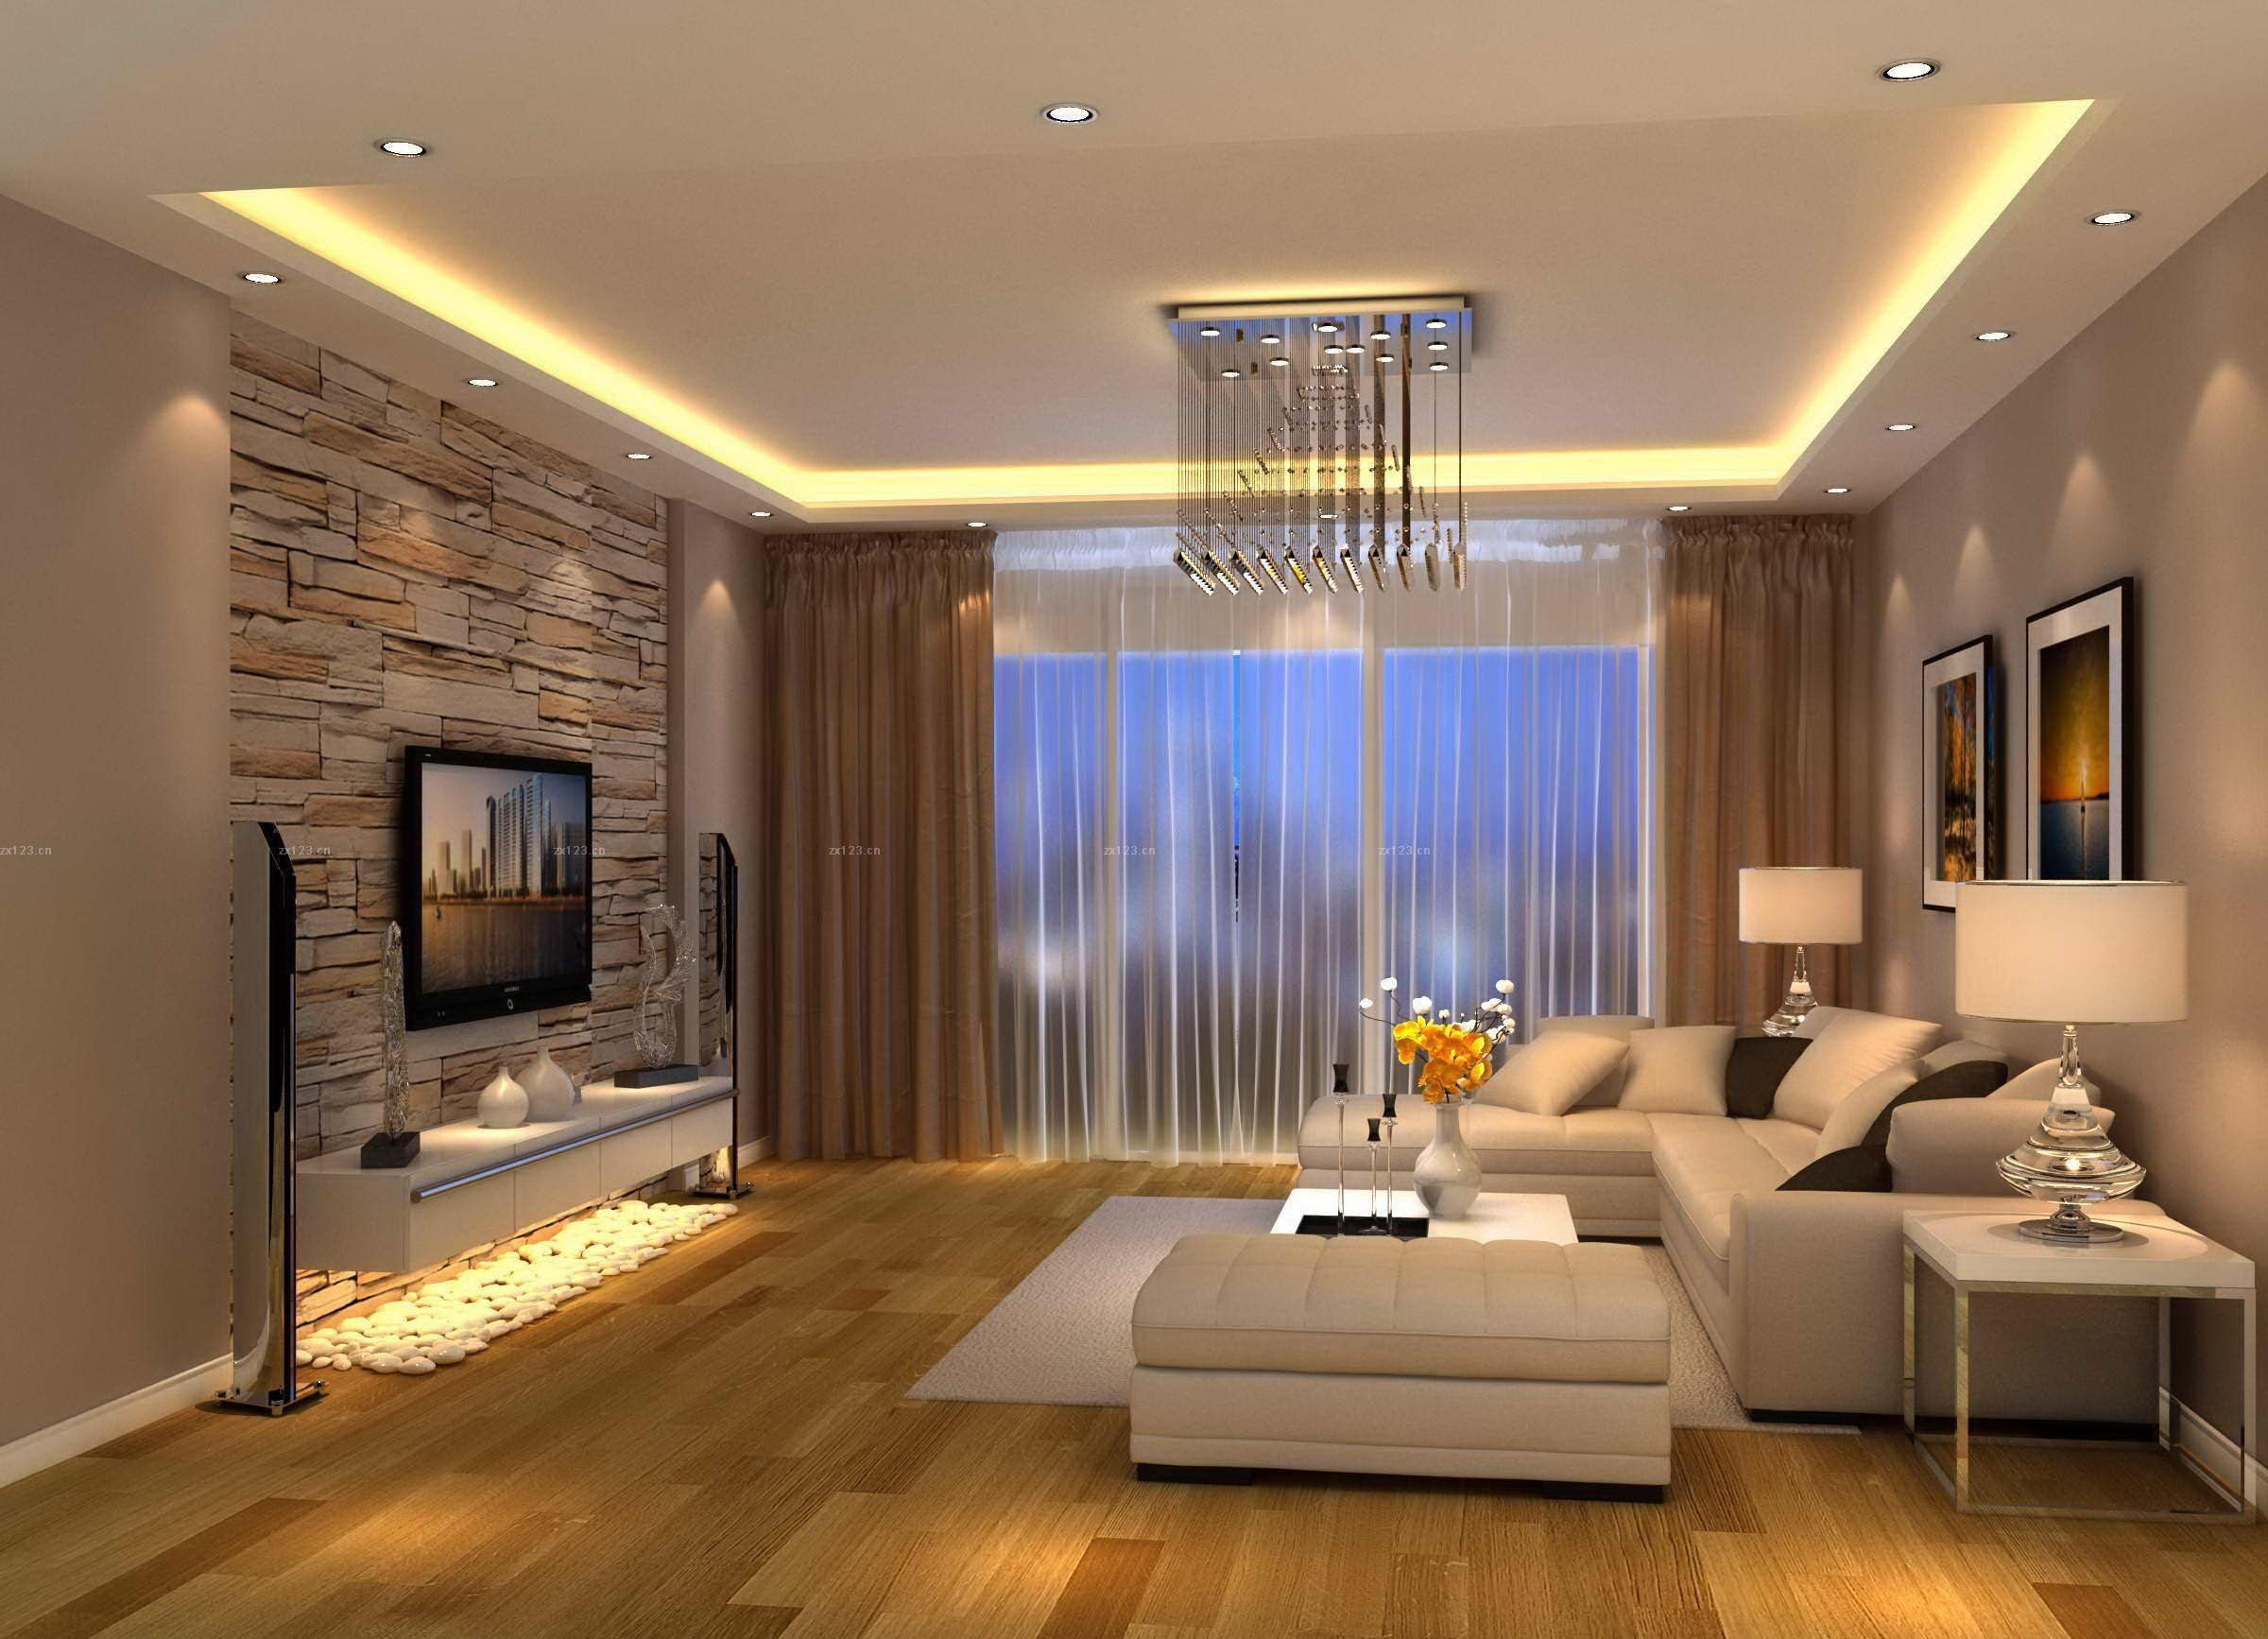 modern living room brown design … | Pinteres… on modern living room crystal chandelier, modern dining room lighting, modern living room benches, modern living room kitchen, modern living room mirrors, modern living room home, modern living room decoration lighting, modern living room chairs, beach living room lighting, modern living room flooring, modern living room wall, modern living room books,